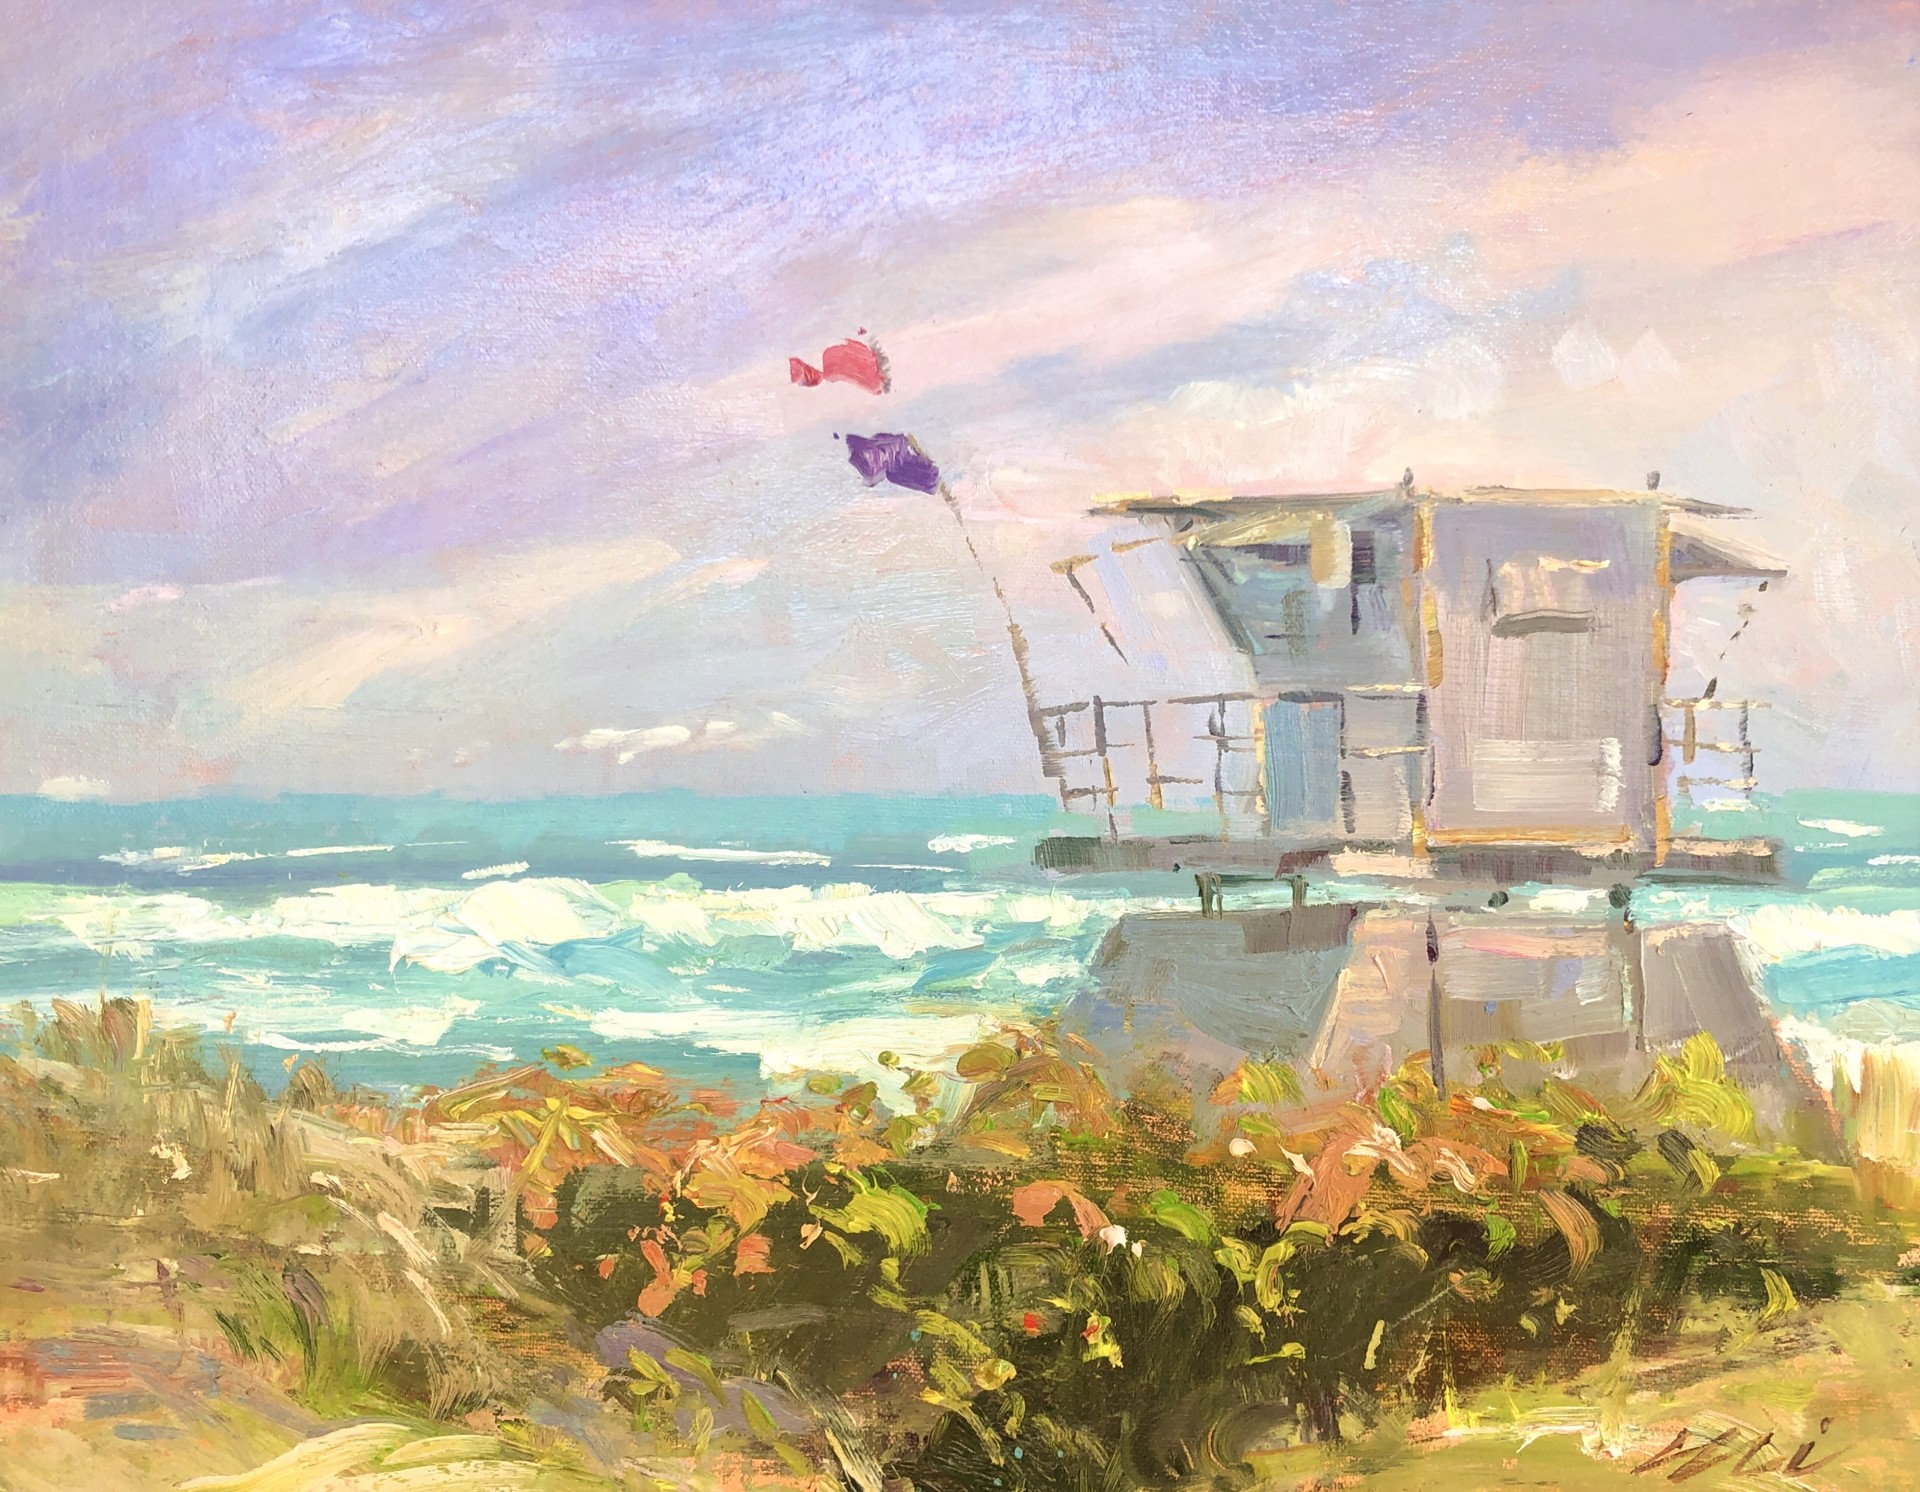 Lifeguard Shack by Eli Cedrone